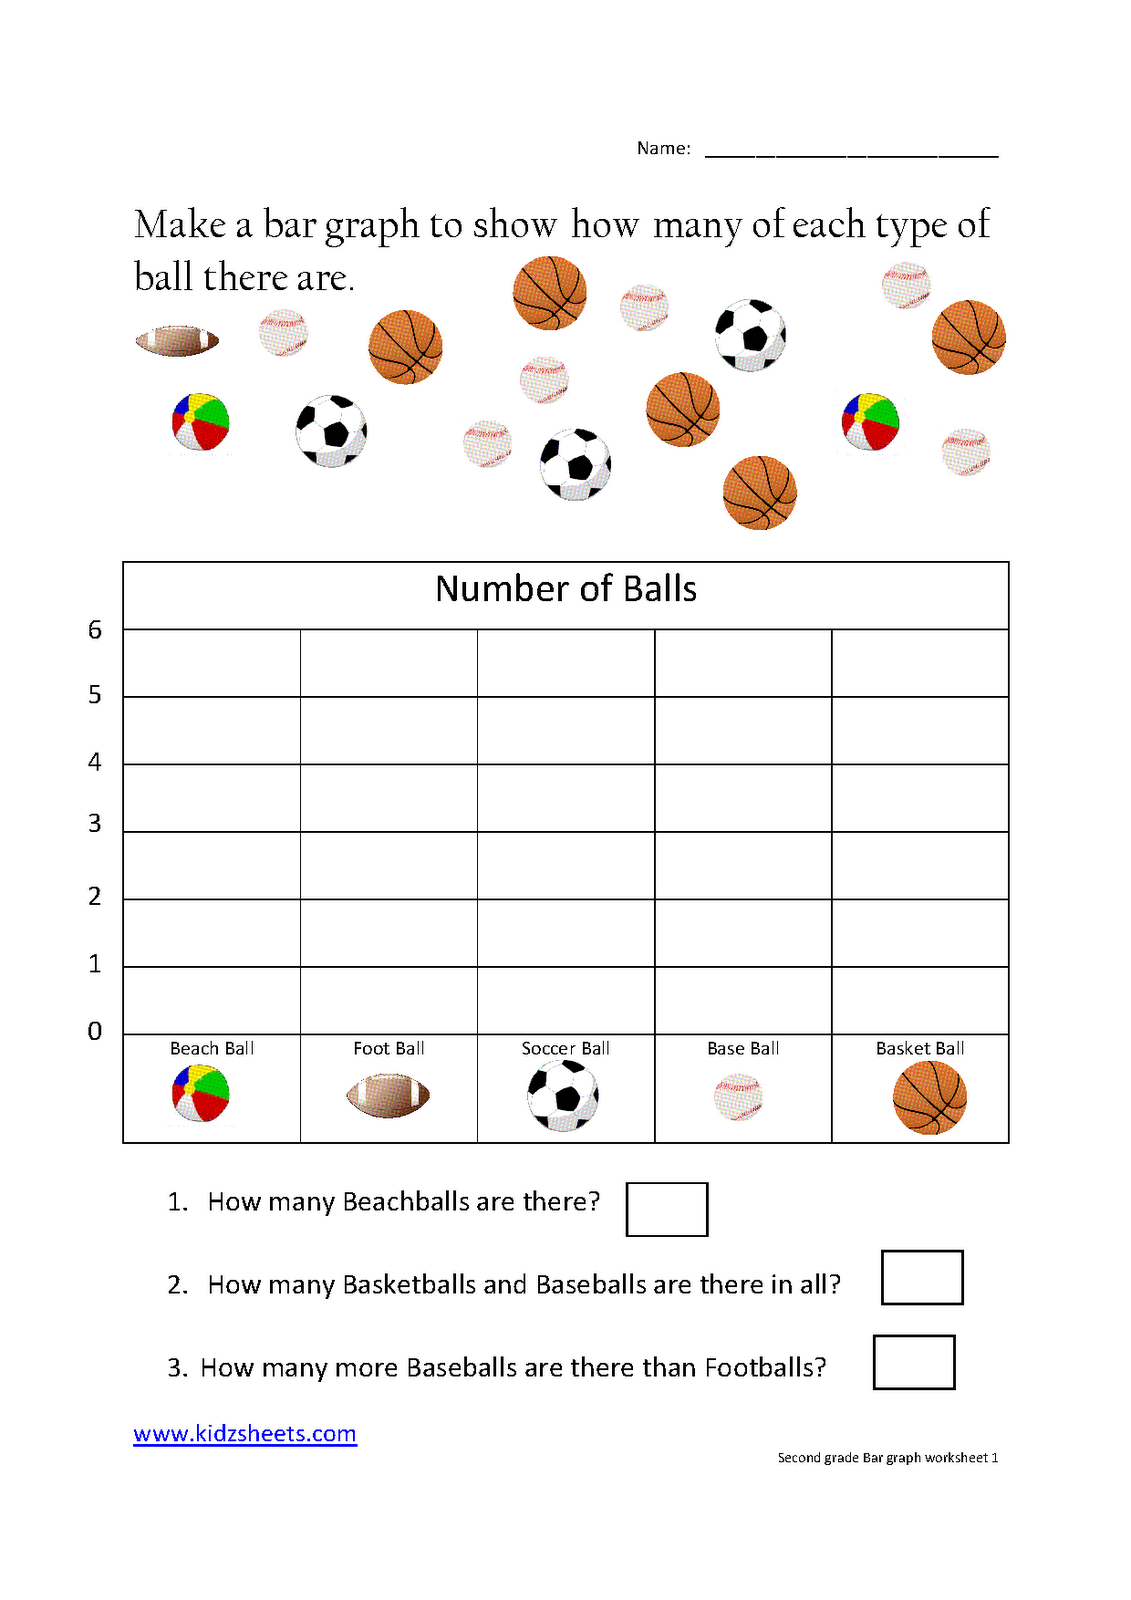 Second Grade Bar Graph Worksheet1 With Images